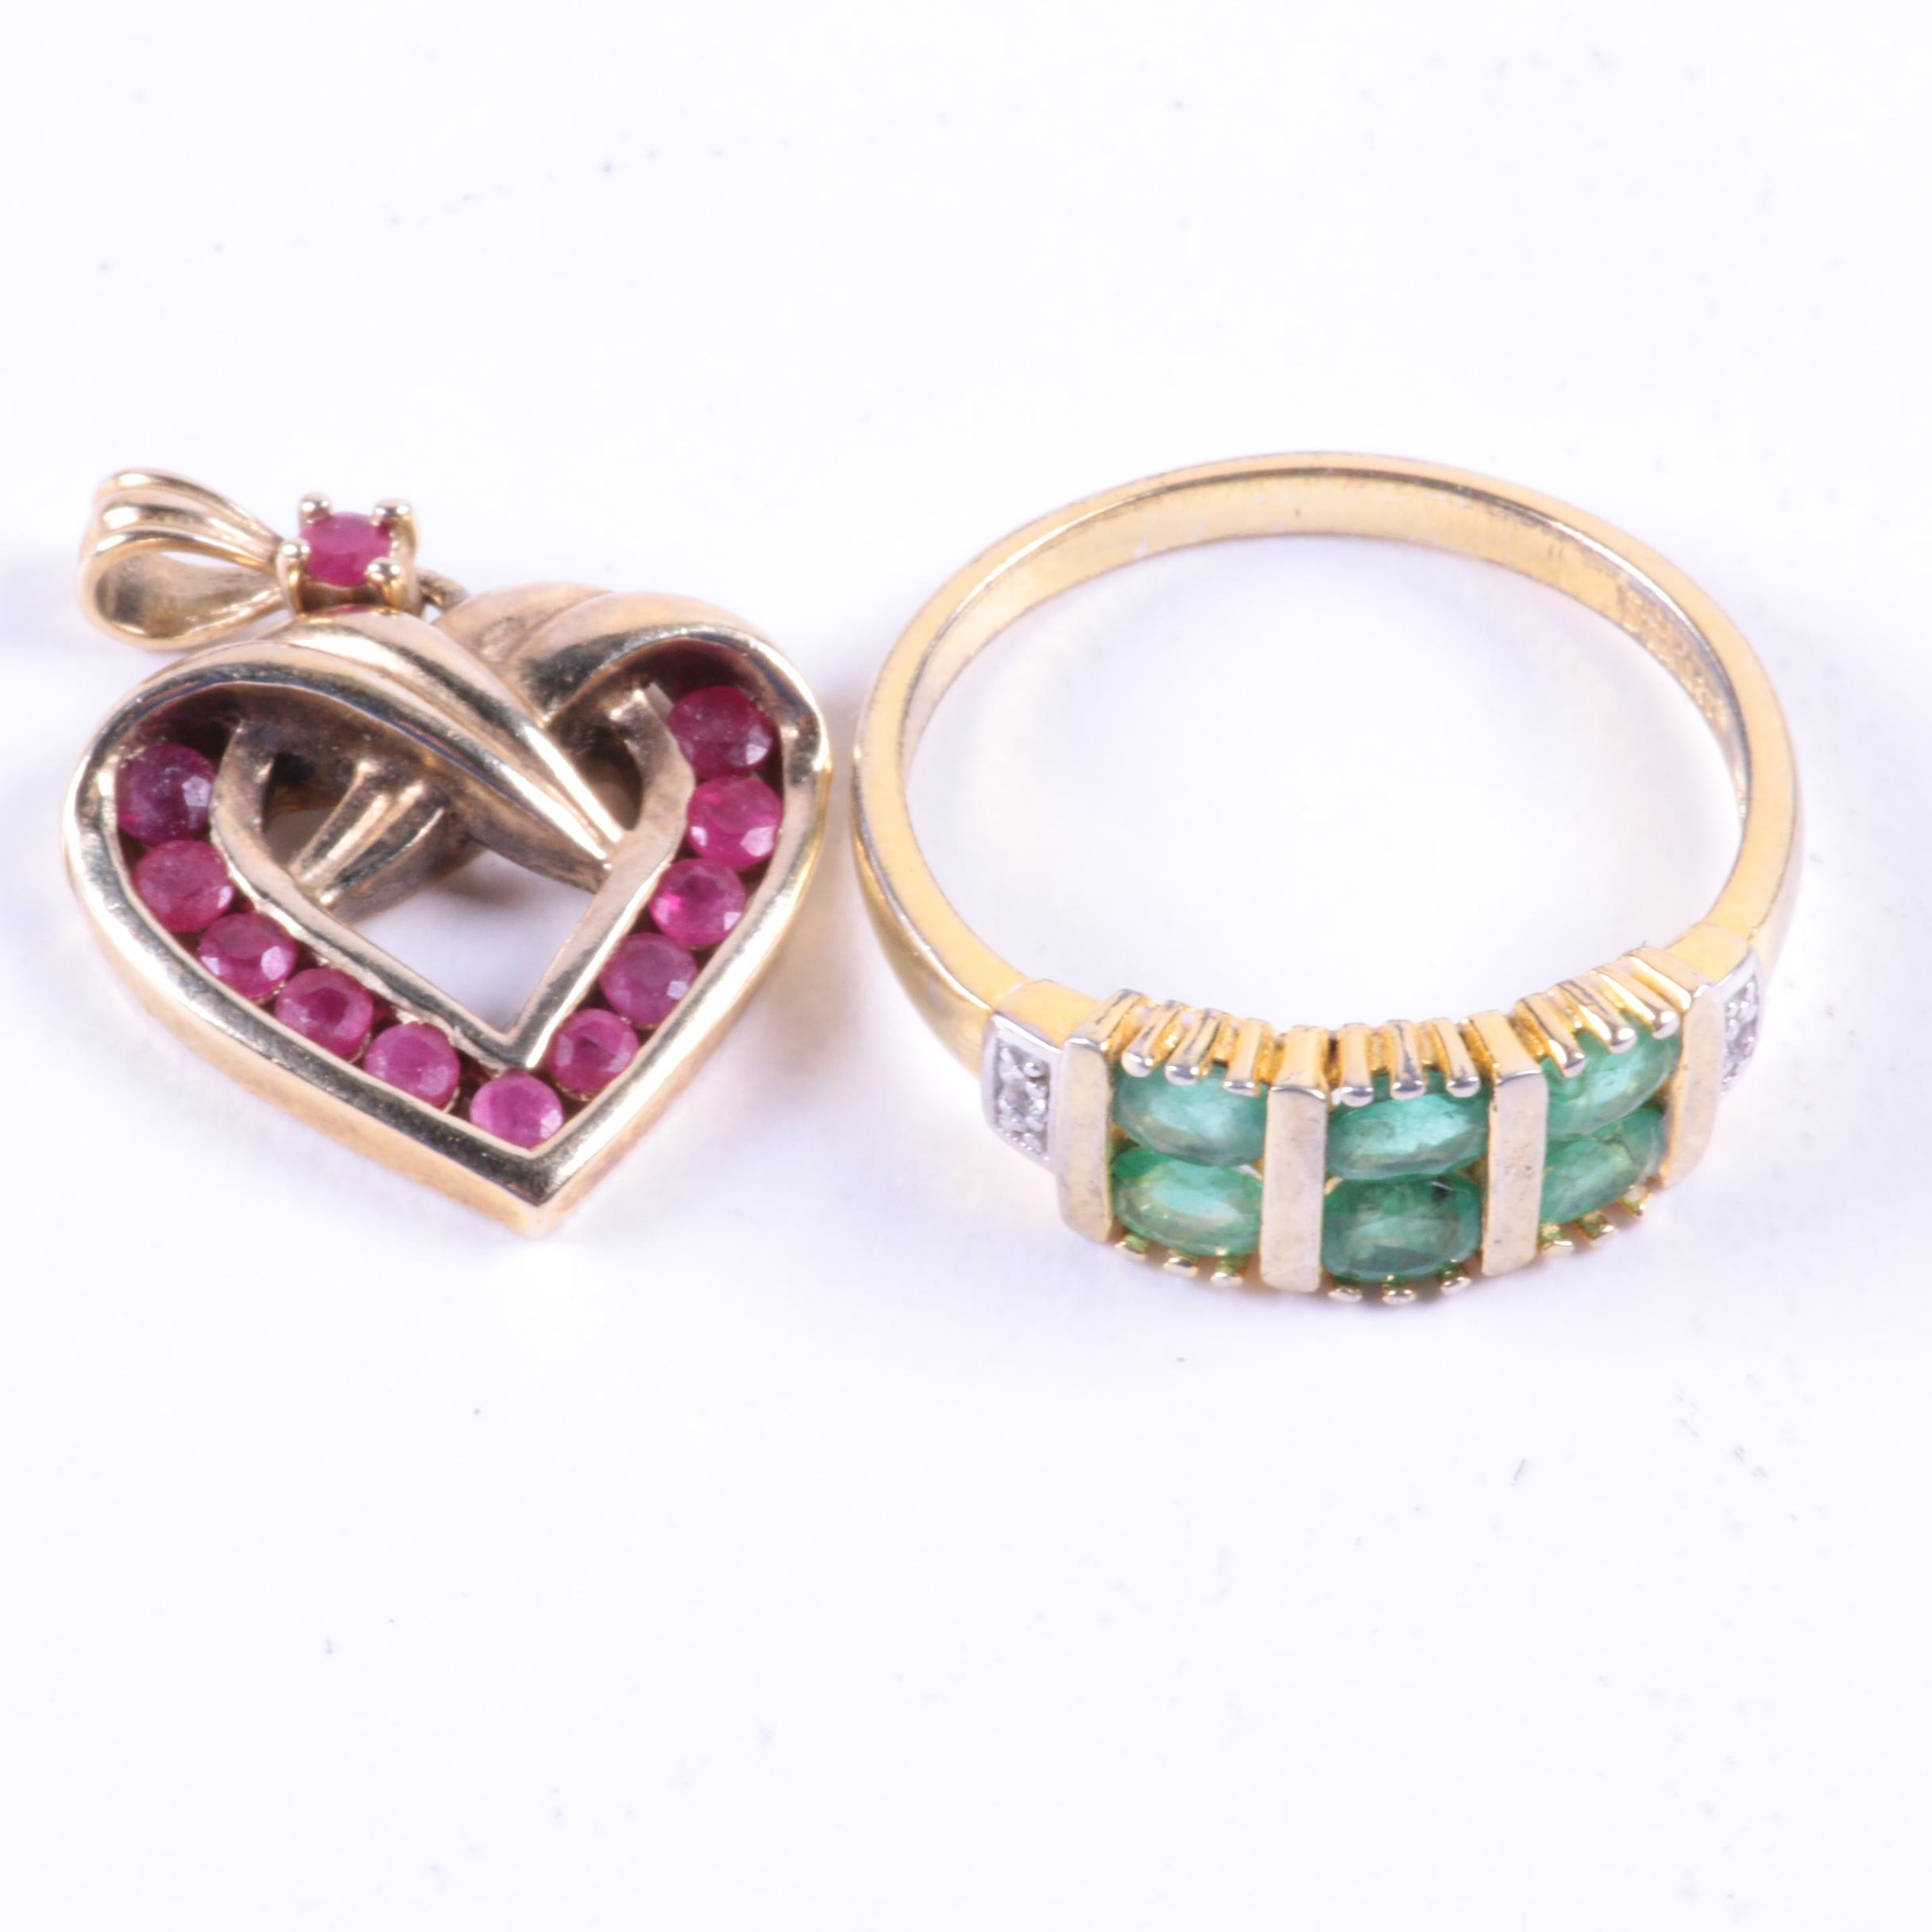 Sterling Silver and Ruby Pendant and Sauer Ring with Emeralds